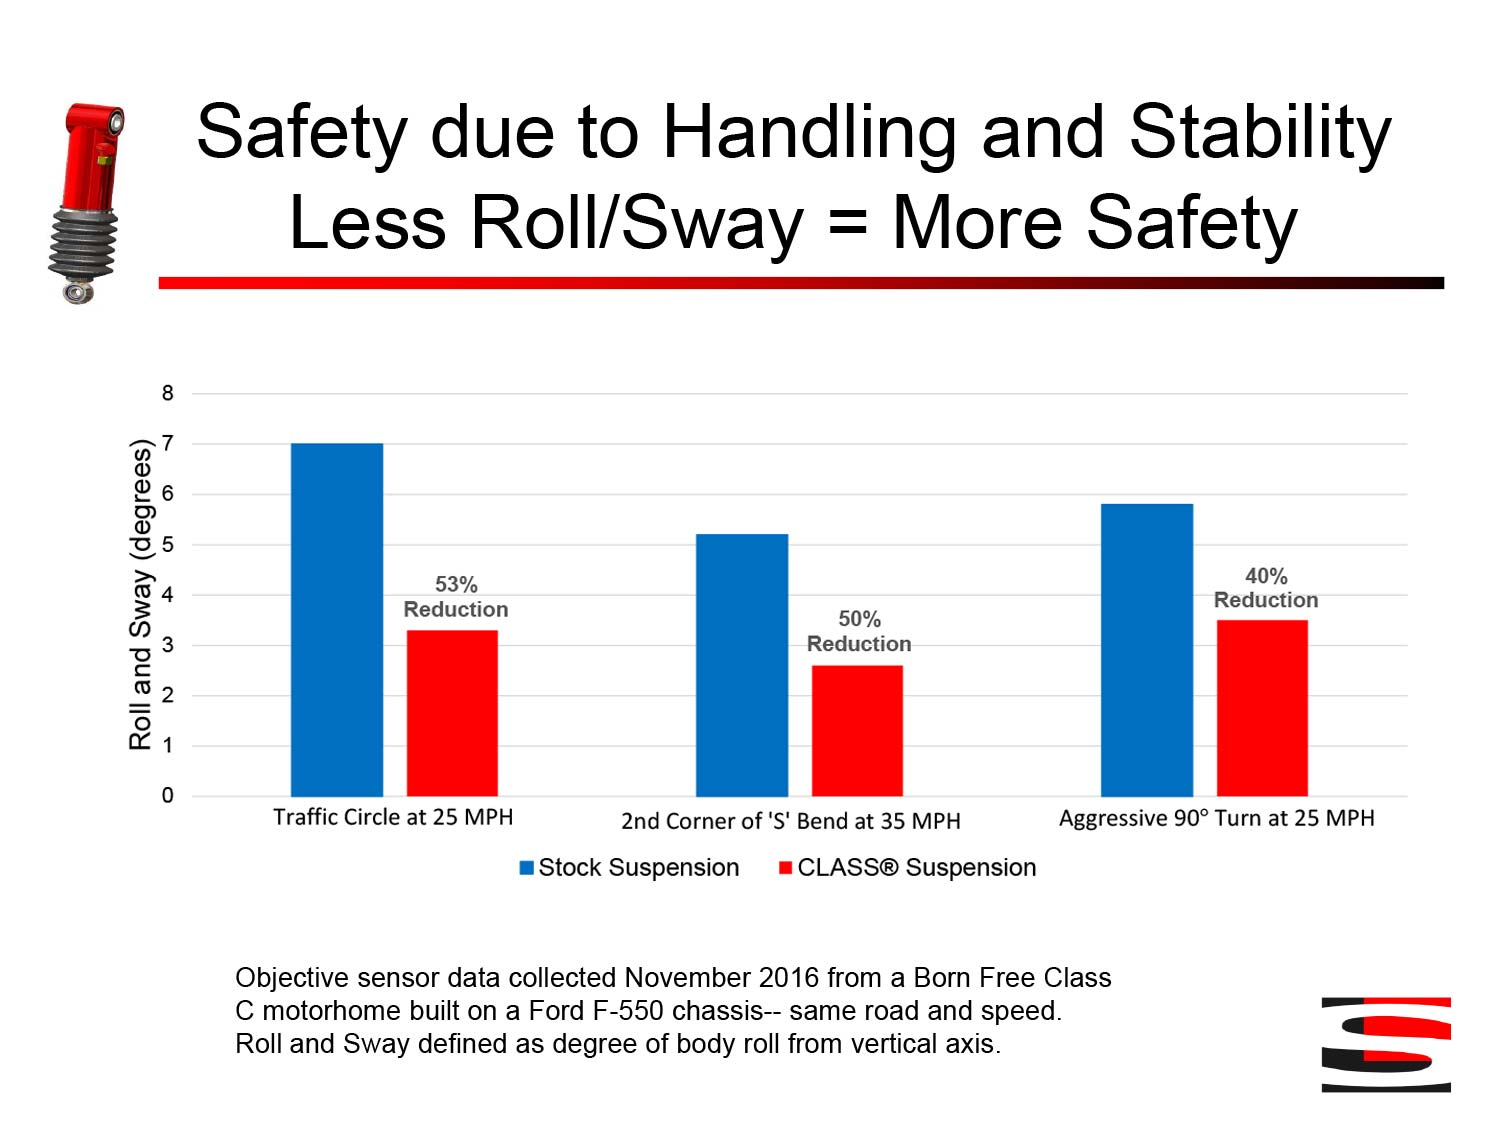 Safety due to Handling and Stability Less Roll/Sway = More Safety